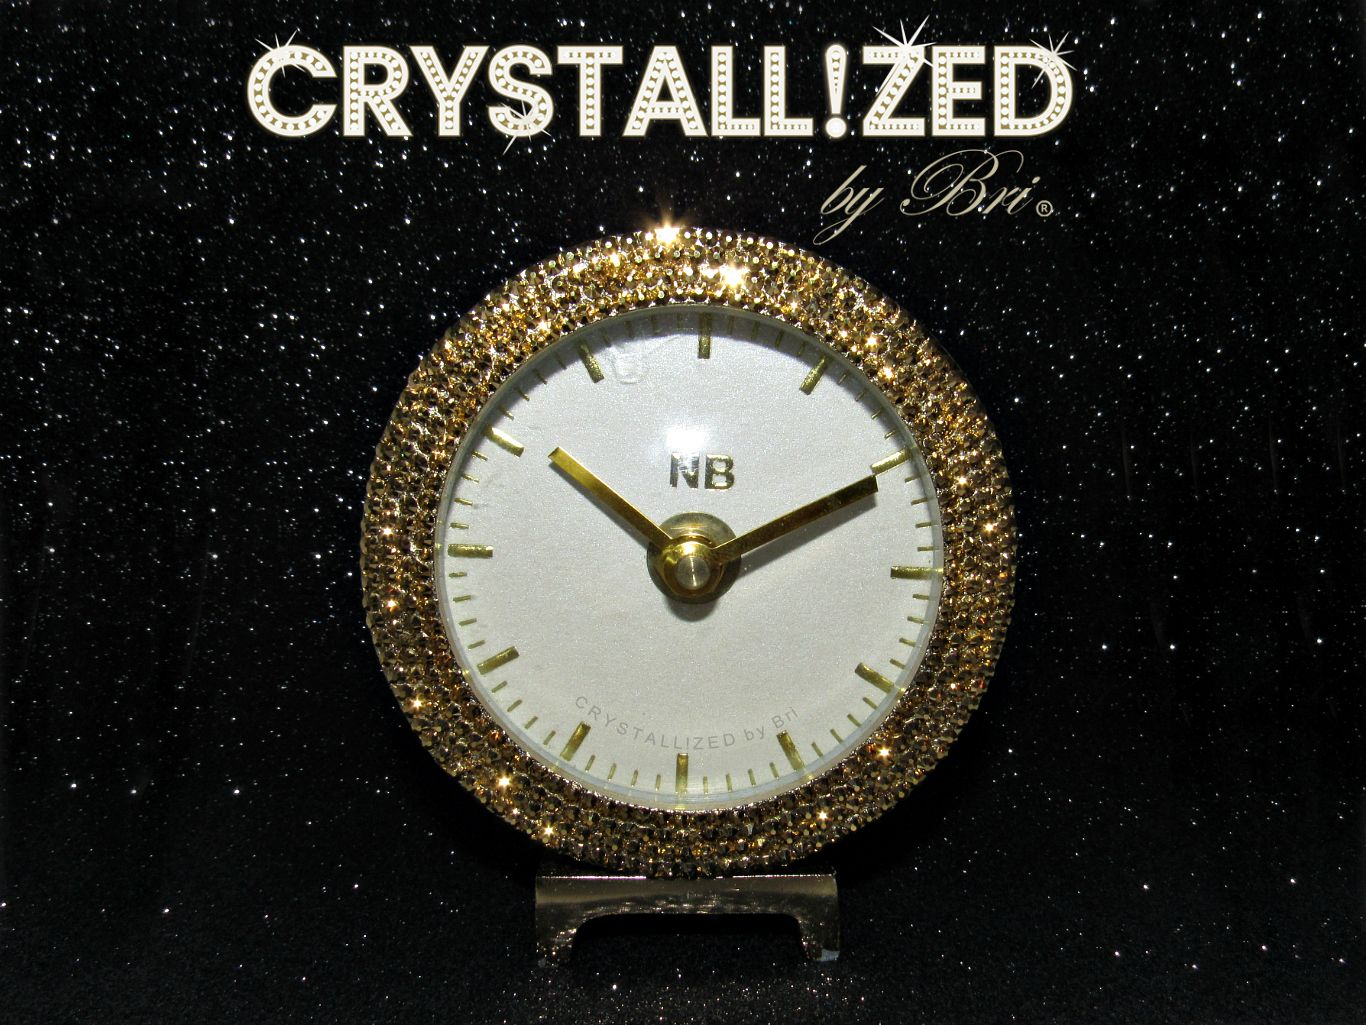 d12ed80c60 Custom Made Crystallized Gold Desk Clock Office Bling Made With Swarovski  Crystals